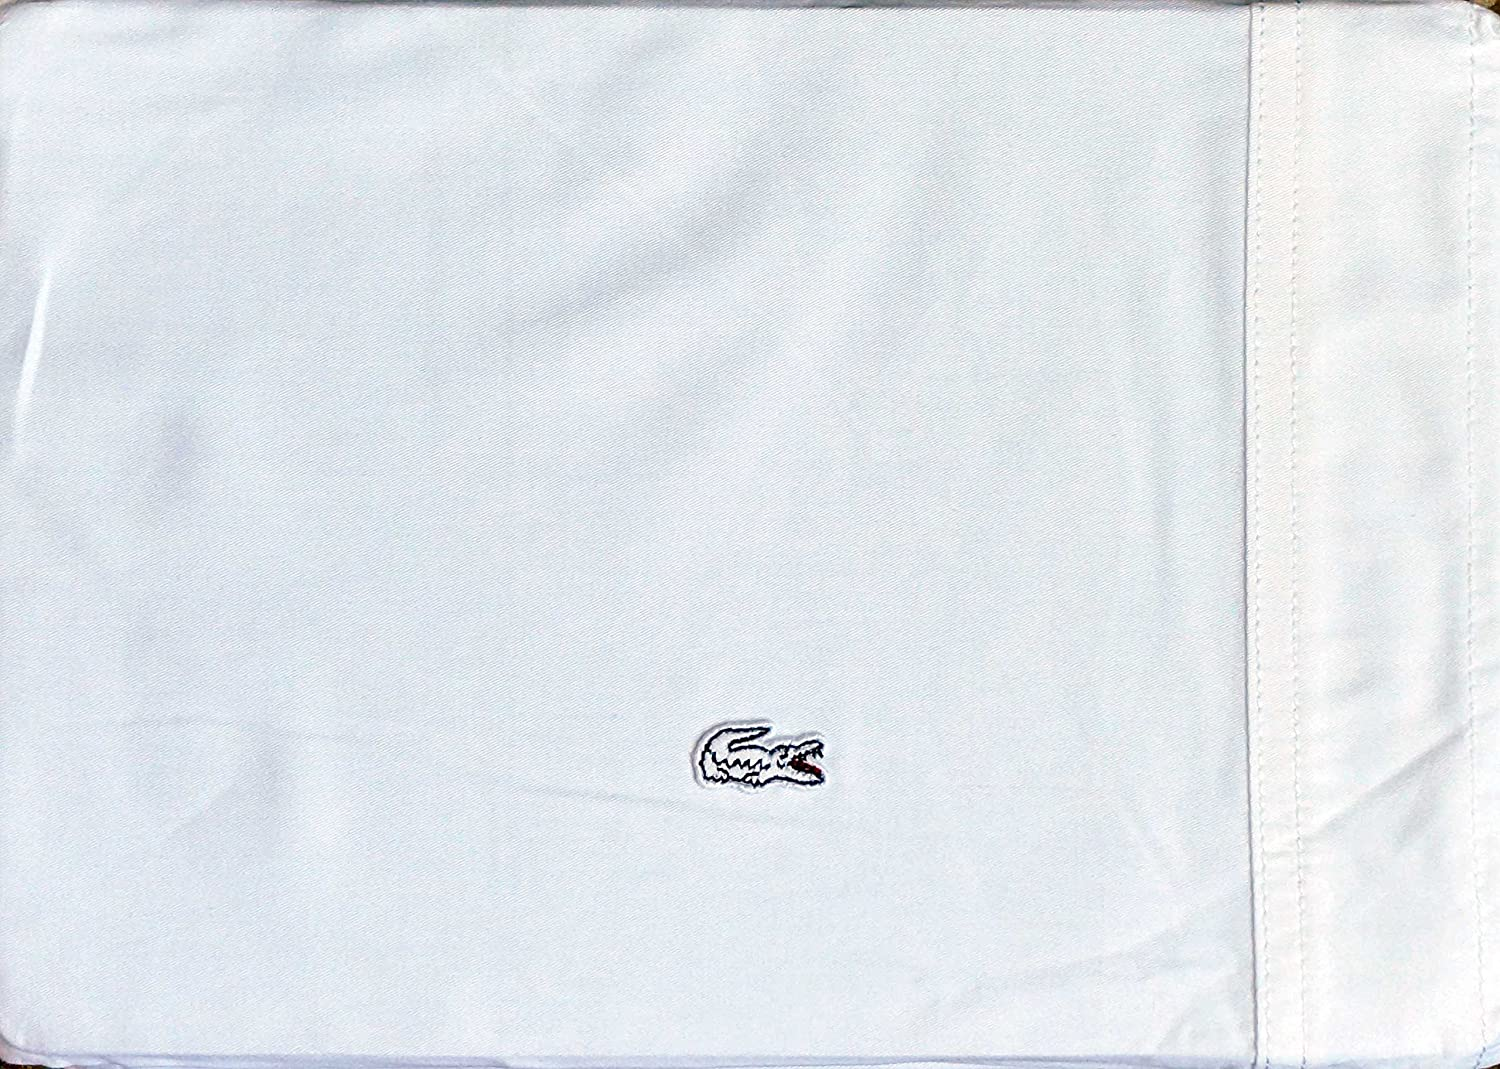 LaCoste Bedding 4pc Queen Brushed Twill Sheet Set White